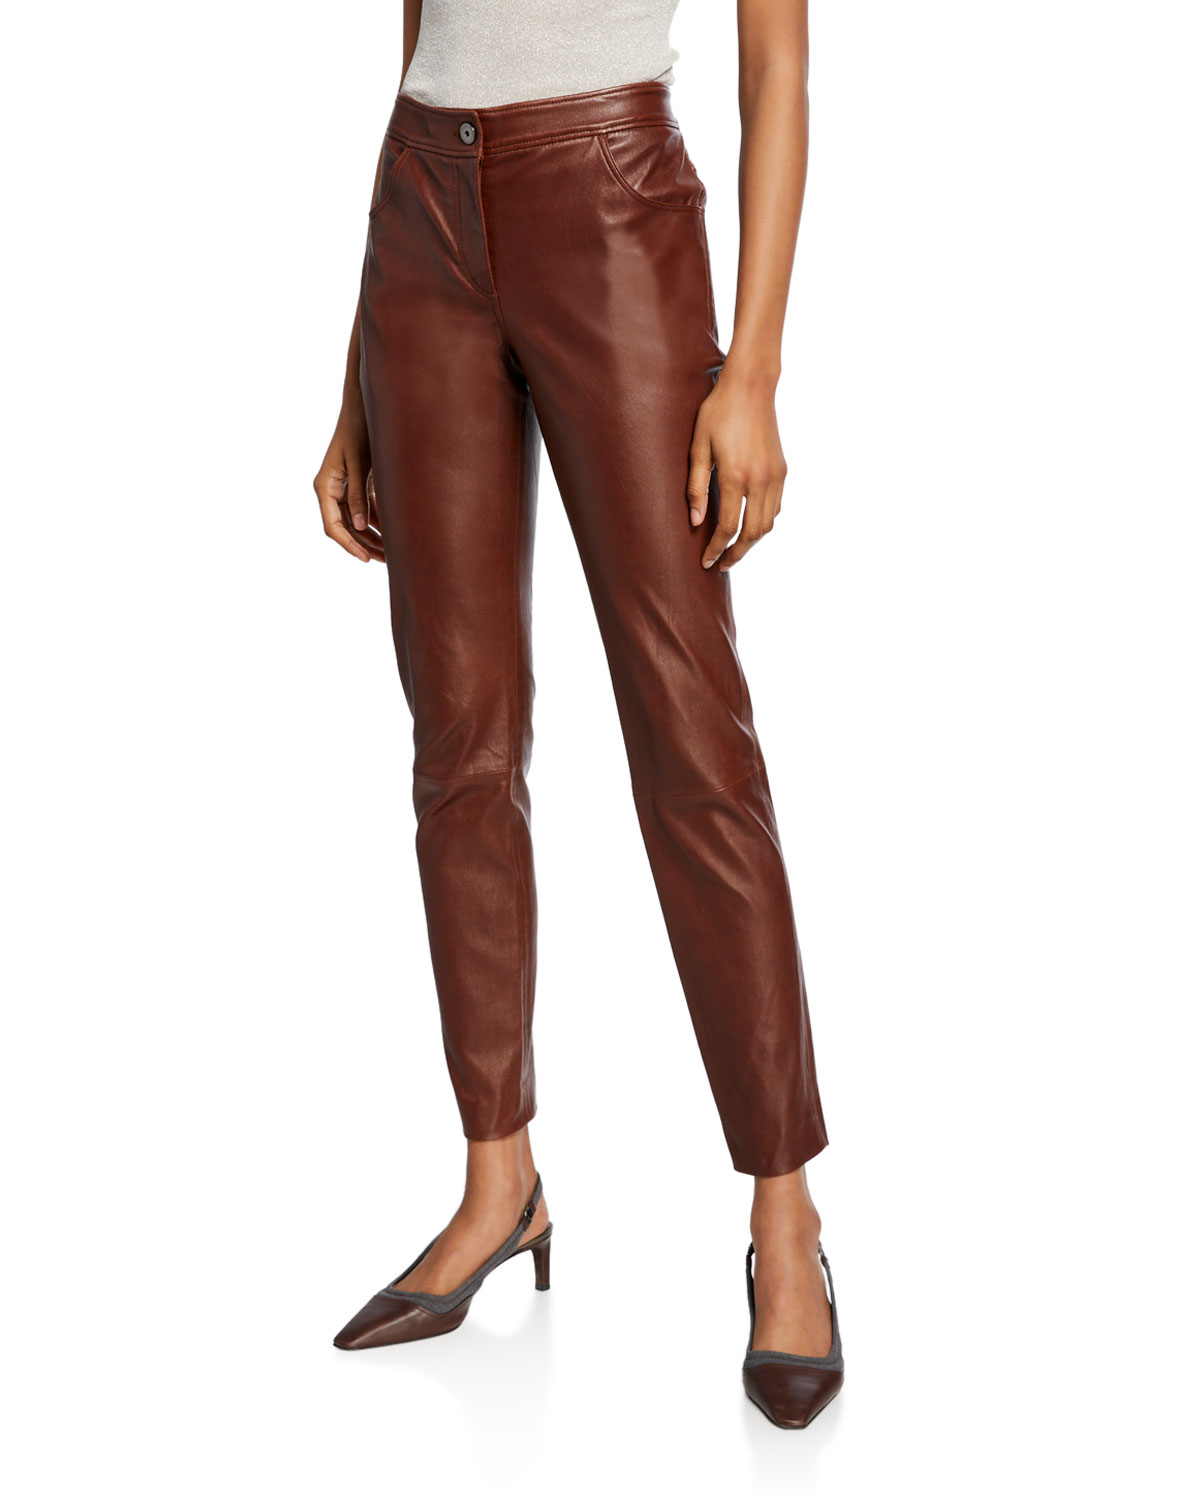 Leather 4-Pocket Leggings